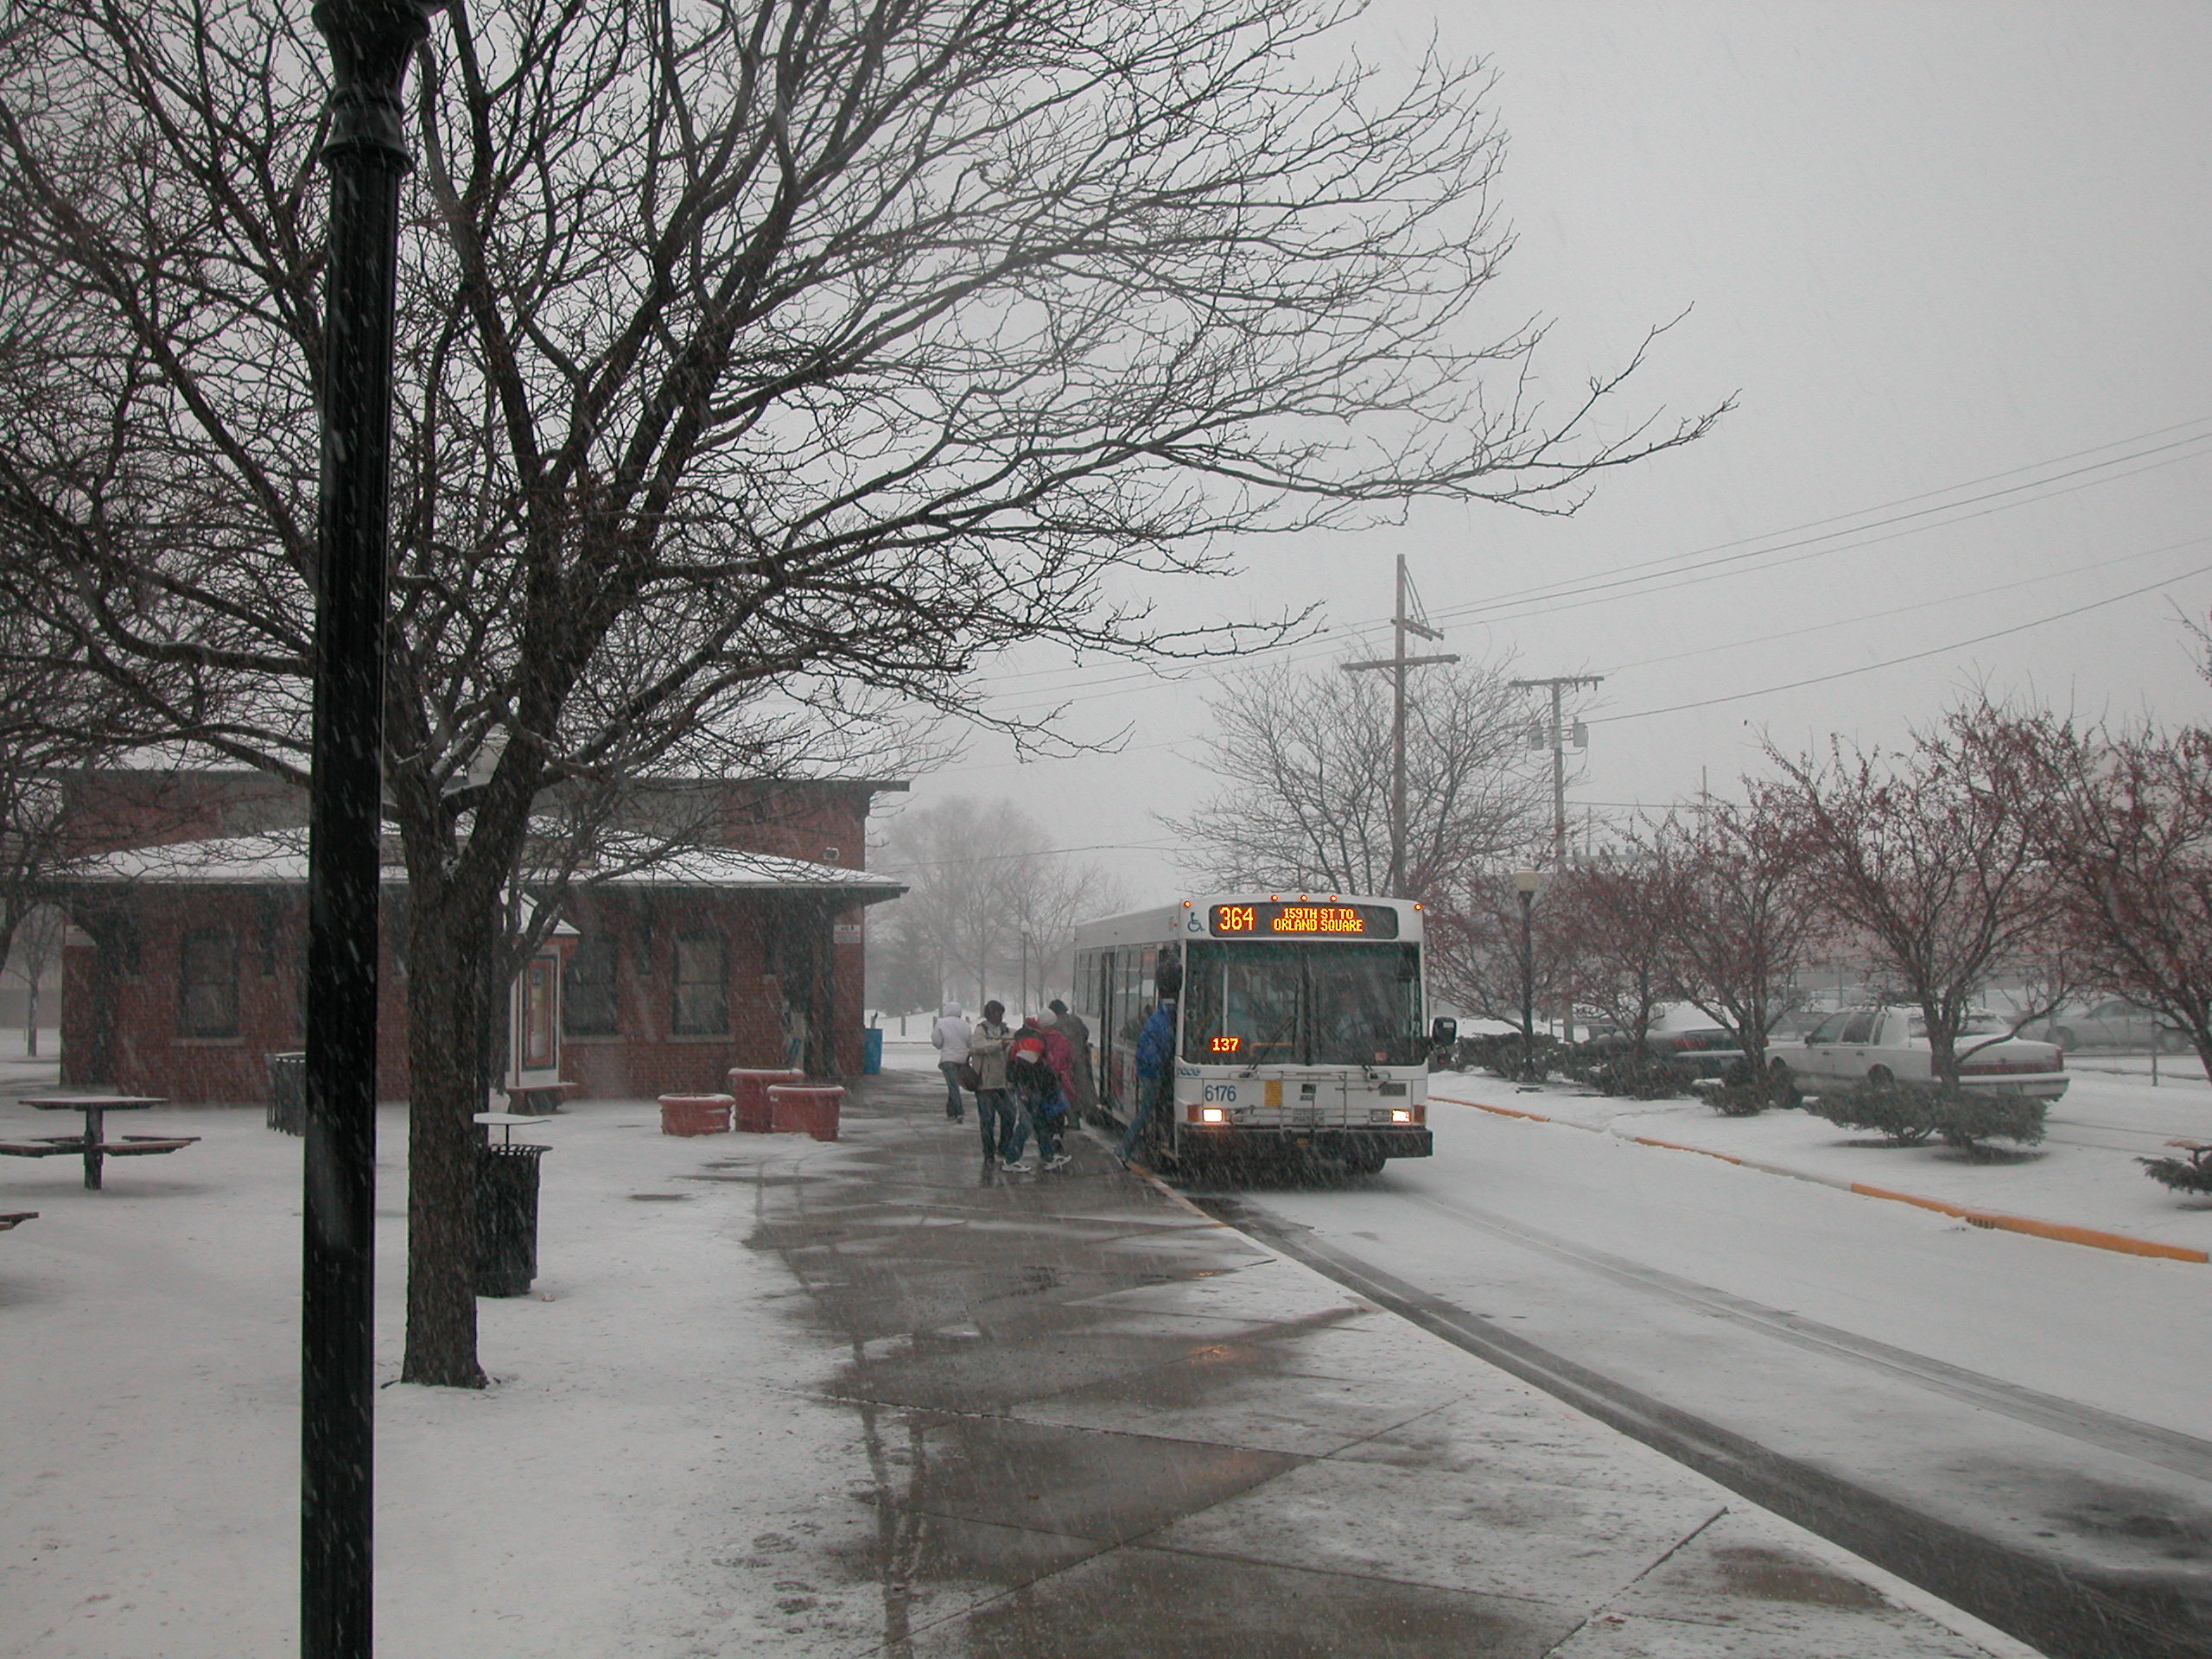 file:20051208 15 pace bus, hammond, indiana (13023550244)